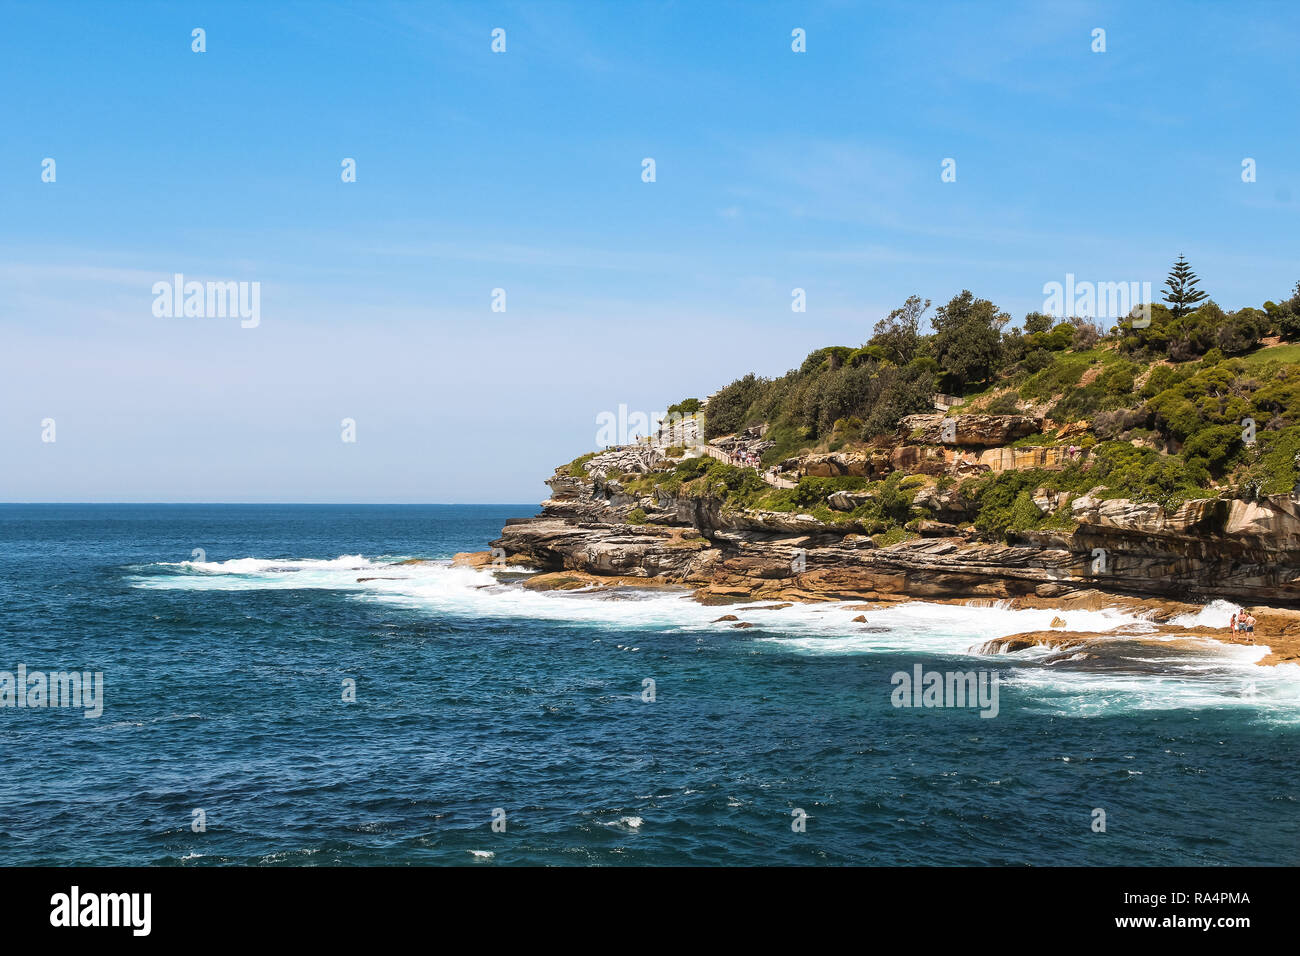 Cliffs at the coastal walk from Bondi beach to Coogee beach in Sydney on a perfect blue day in summer (Sydney, New South Wales, Australia) - Stock Image